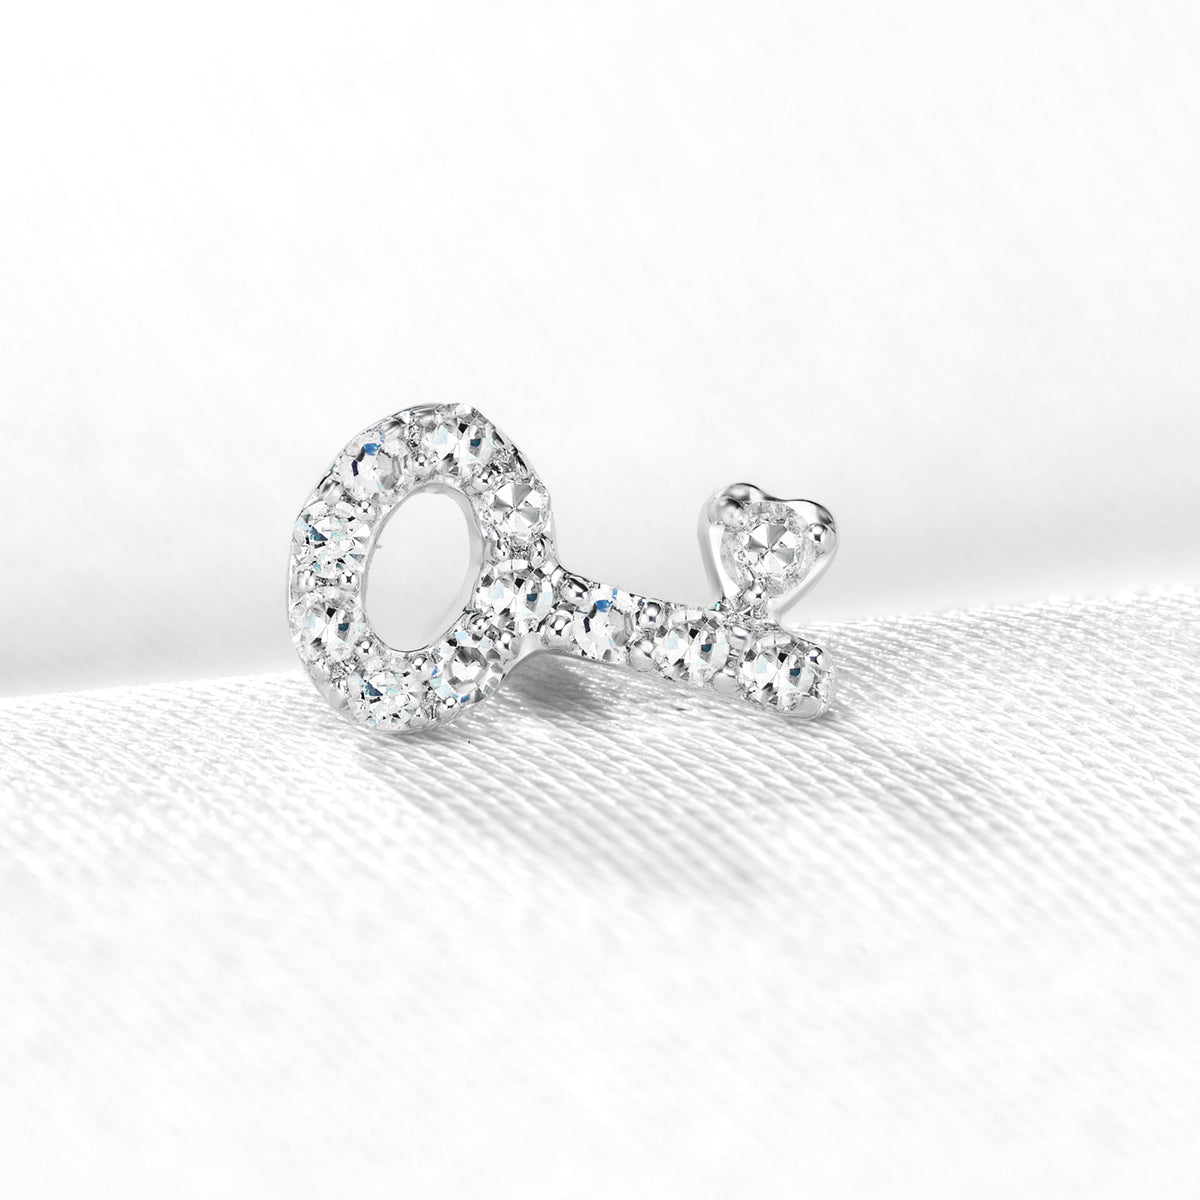 Diamond Key Stud Earrings